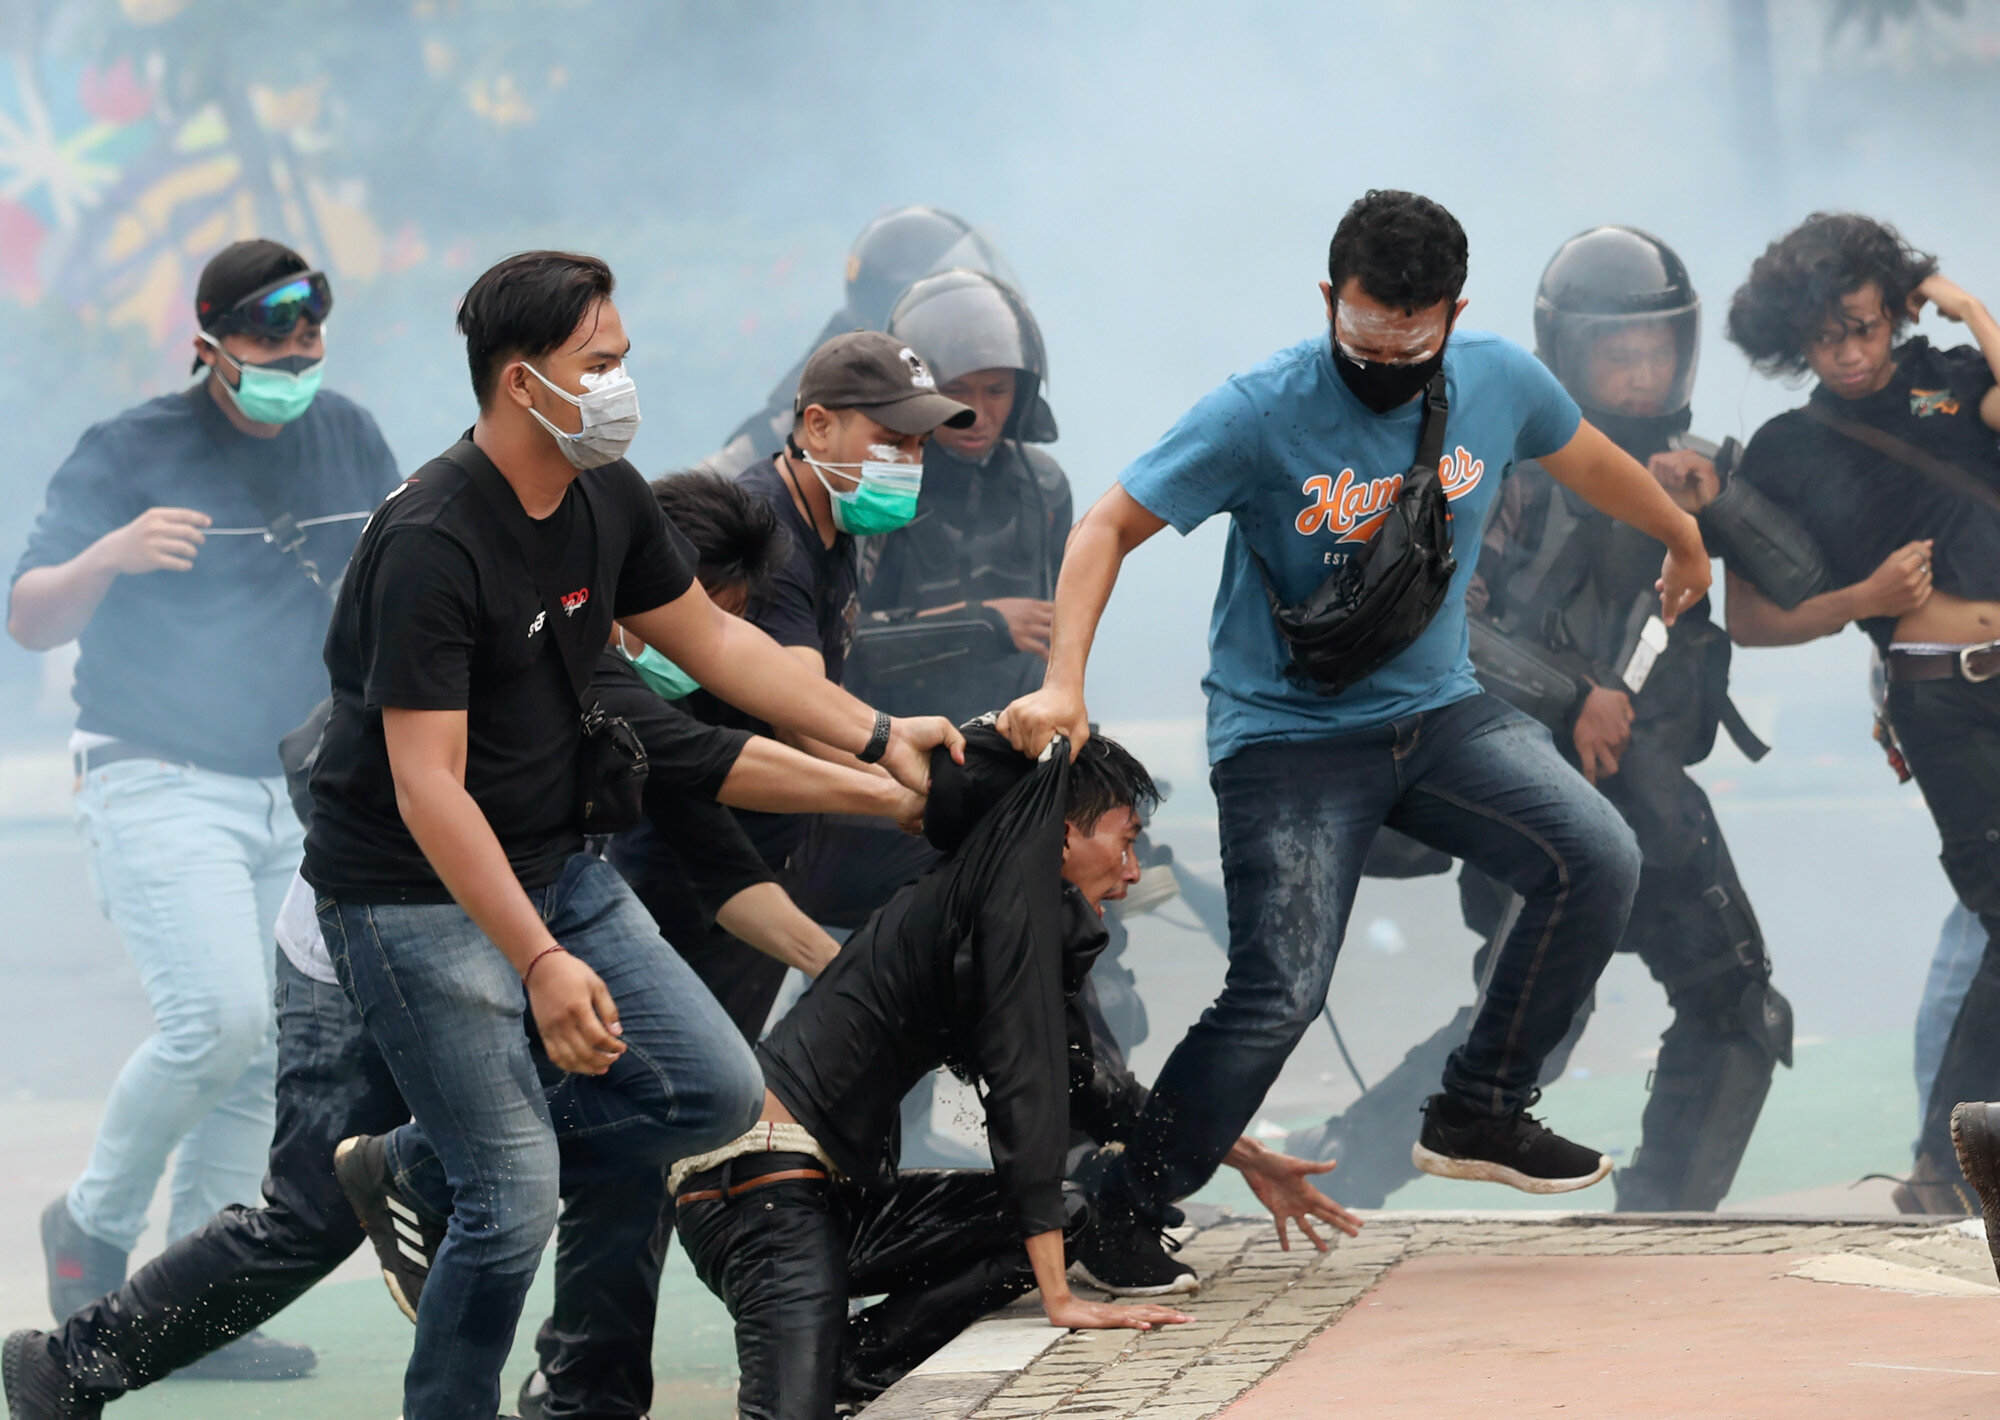 Plainclothes police officers detain demonstrators in Jakarta, Indonesia, on Oct. 8, 2020, during a protest against a new law they say will cripple labor rights and harm the environment. (AP Photo/Tatan Syuflana)